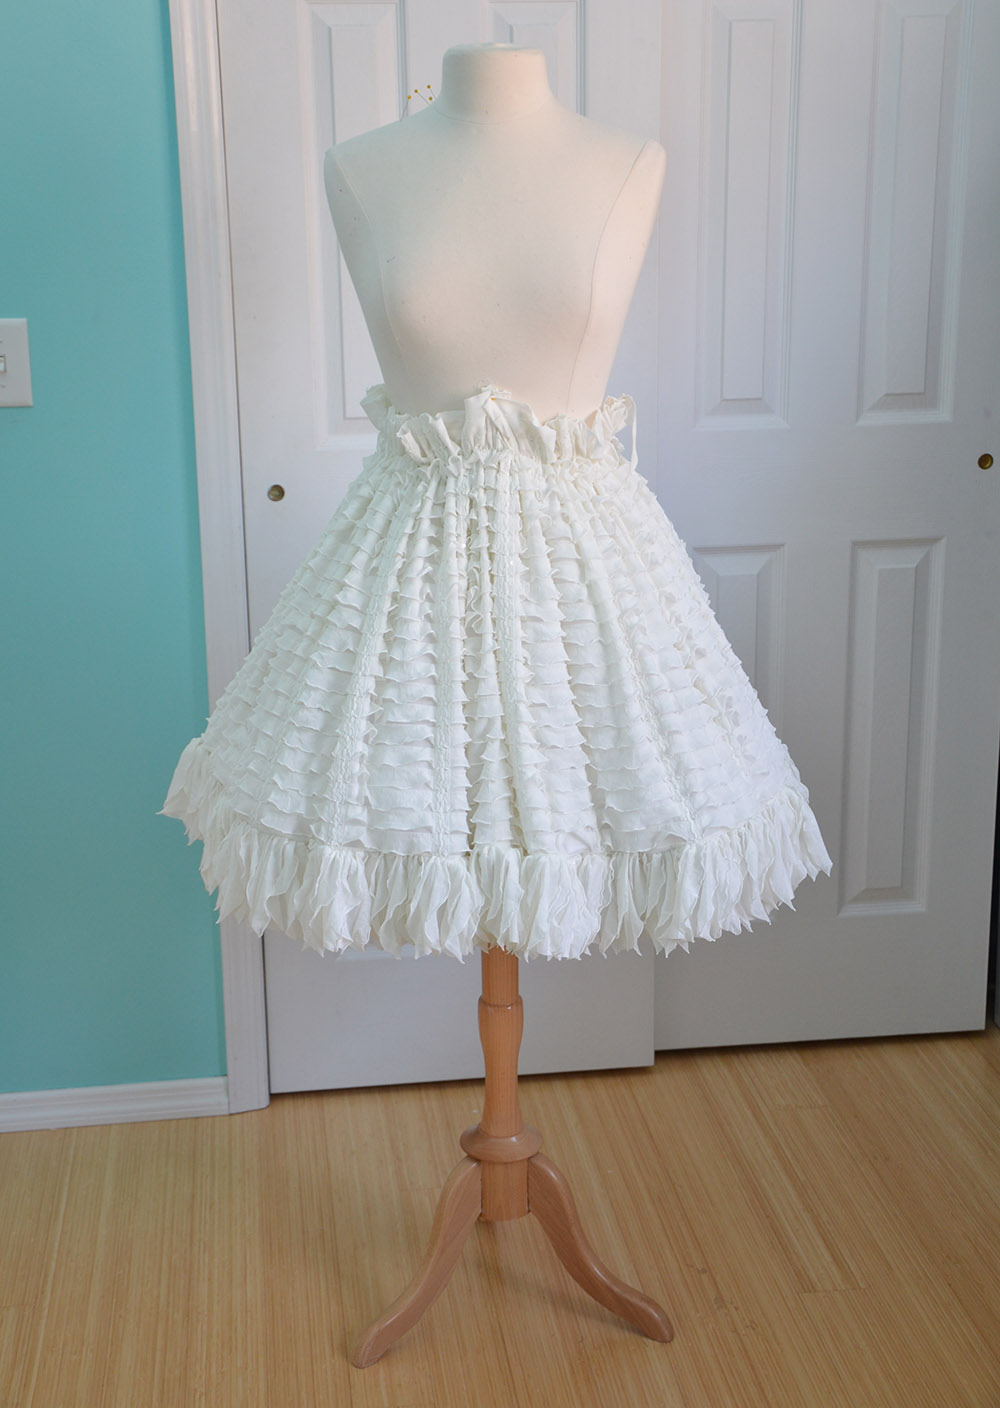 Dress with a fluffy skirt. Pattern dress with a full skirt 84